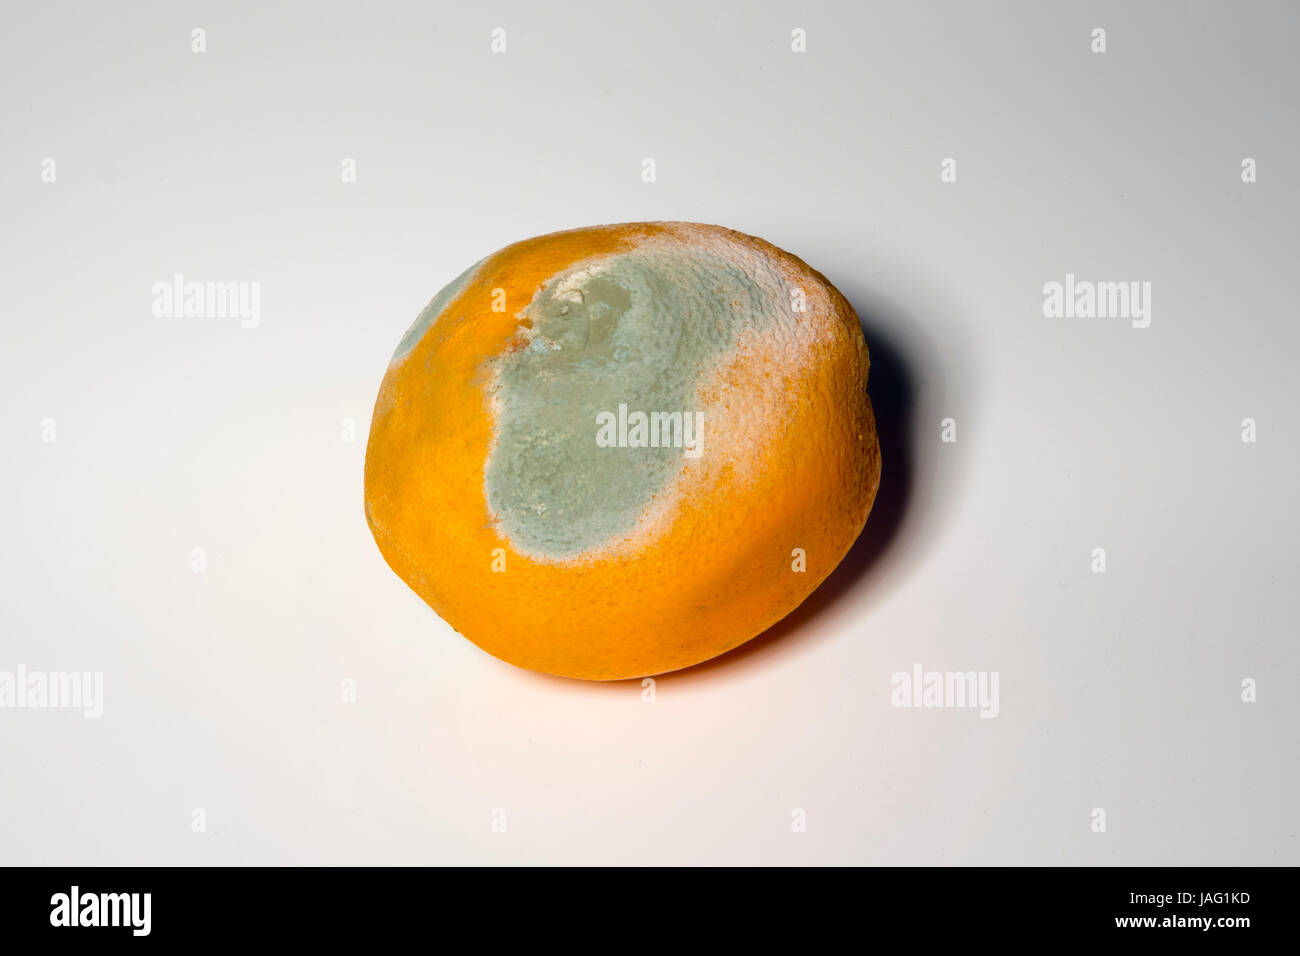 Verdorbenen Lebensmittel, Orange - Stock Image